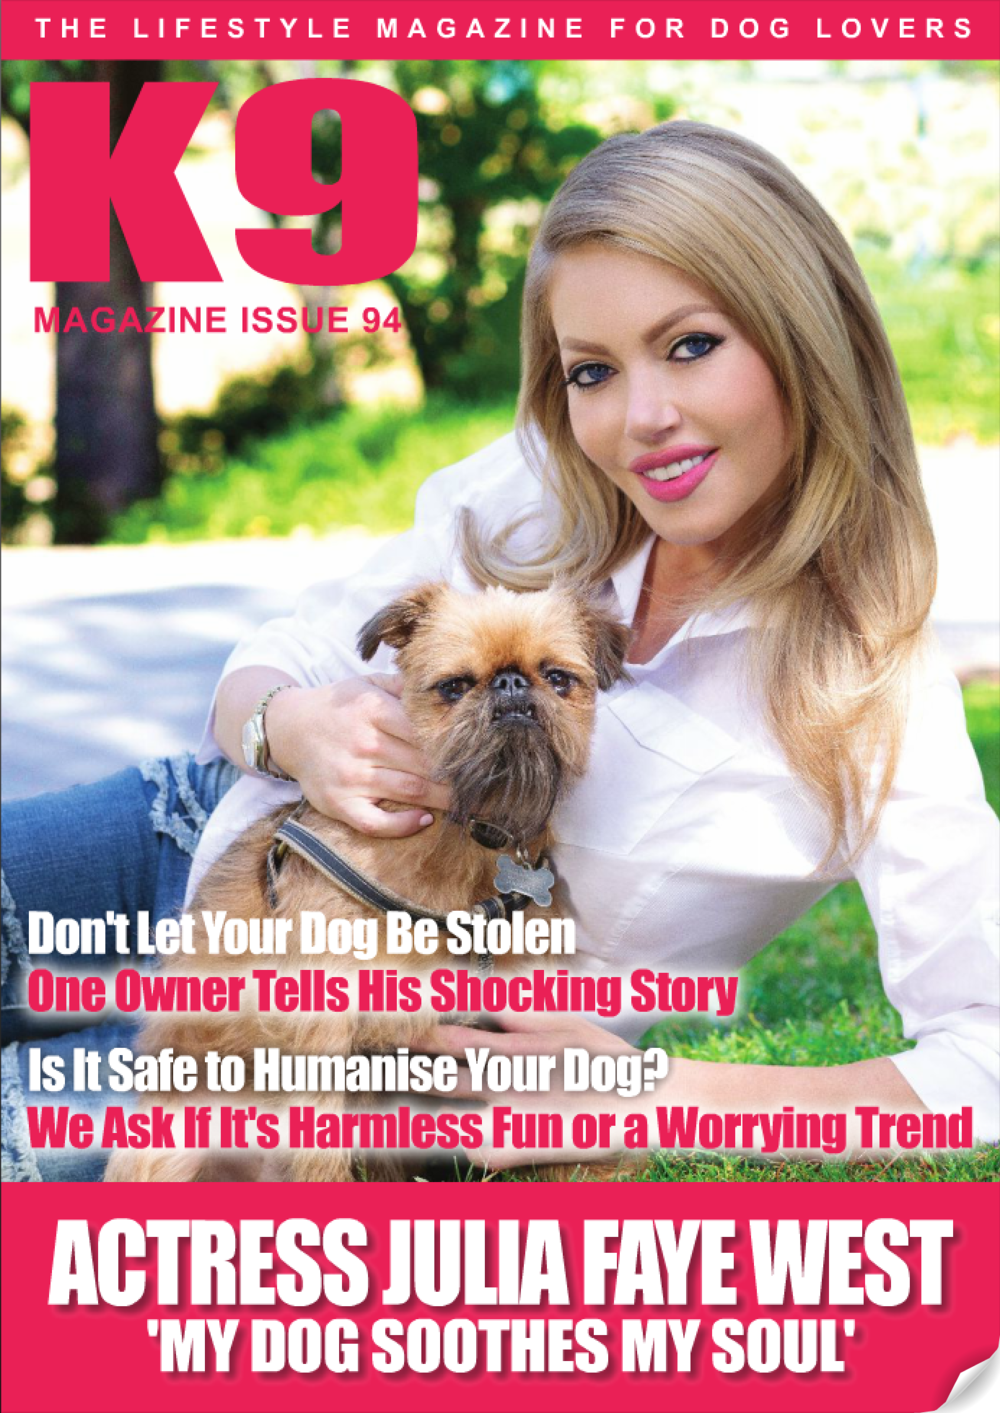 JULIA FAYE WEST - K9 MAG / BEAUTY RETOUCHING / PHOTO ROCHELLE BRODIN